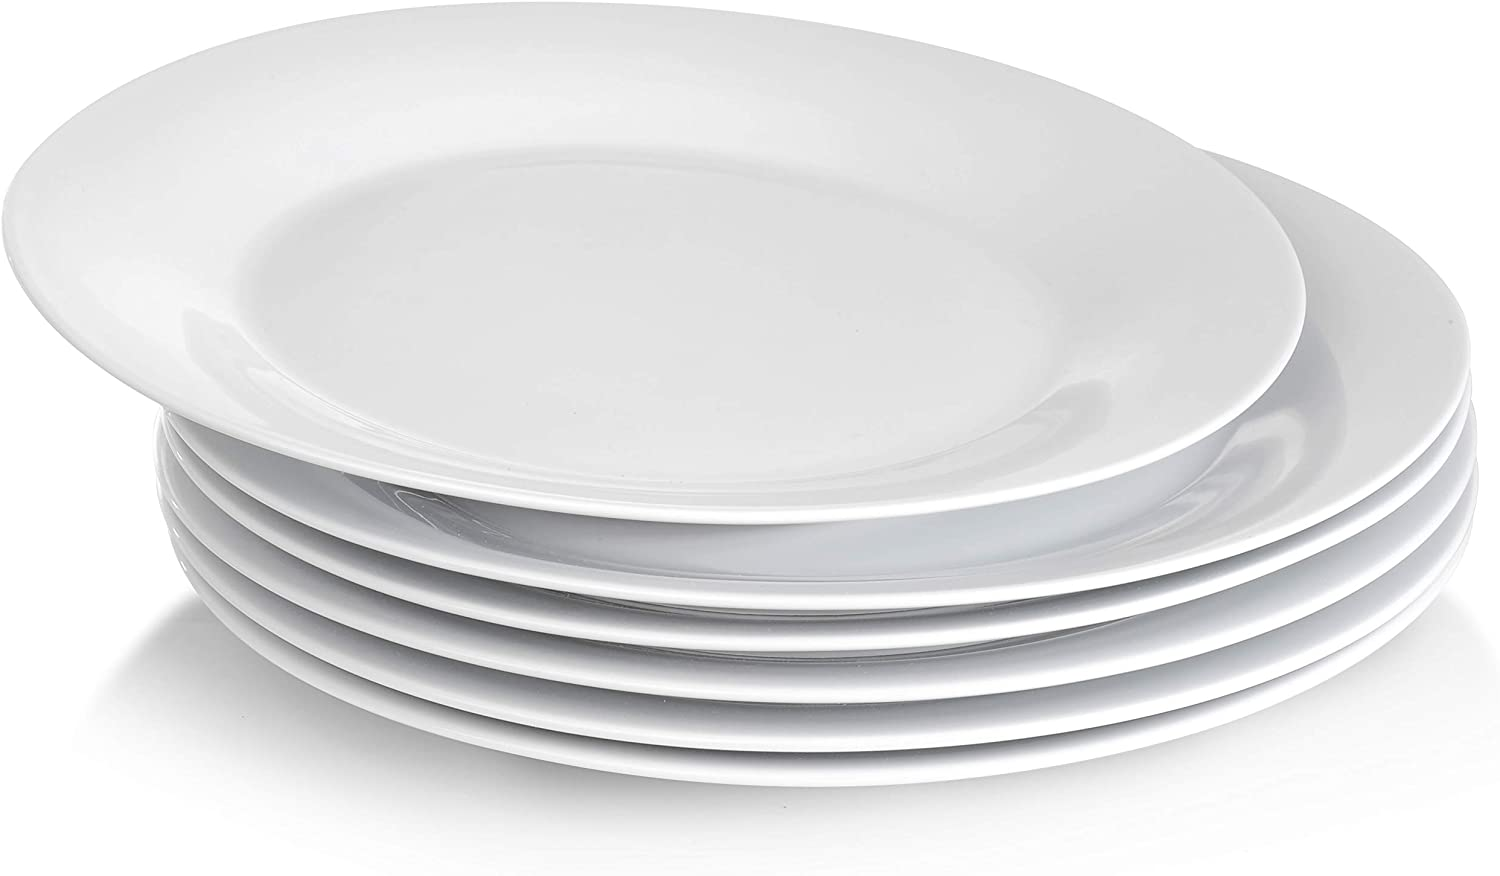 Miicol 10.5 Inches Porcelain Dinner Plates, Everyday Serving Plate Set, Set of 6, White